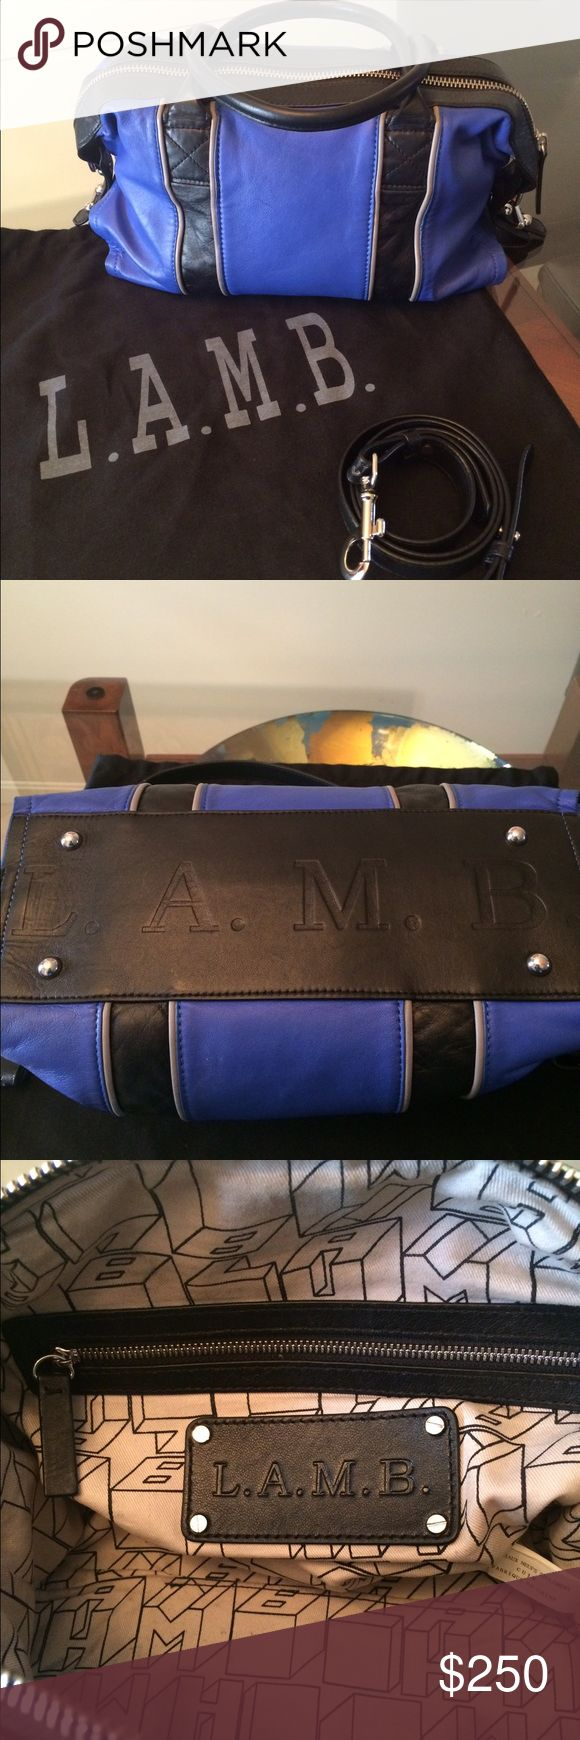 Gigi 2 Leather Duffle Bag Cobalt blue and black leather. Two handles and optional shoulder strap. One inner zipper pocket and two slot pockets for cell phone. L.A.M.B. logo and metal feet on bottom of bag. Purchase include dusk bag. L.A.M.B. Bags Shoulder Bags